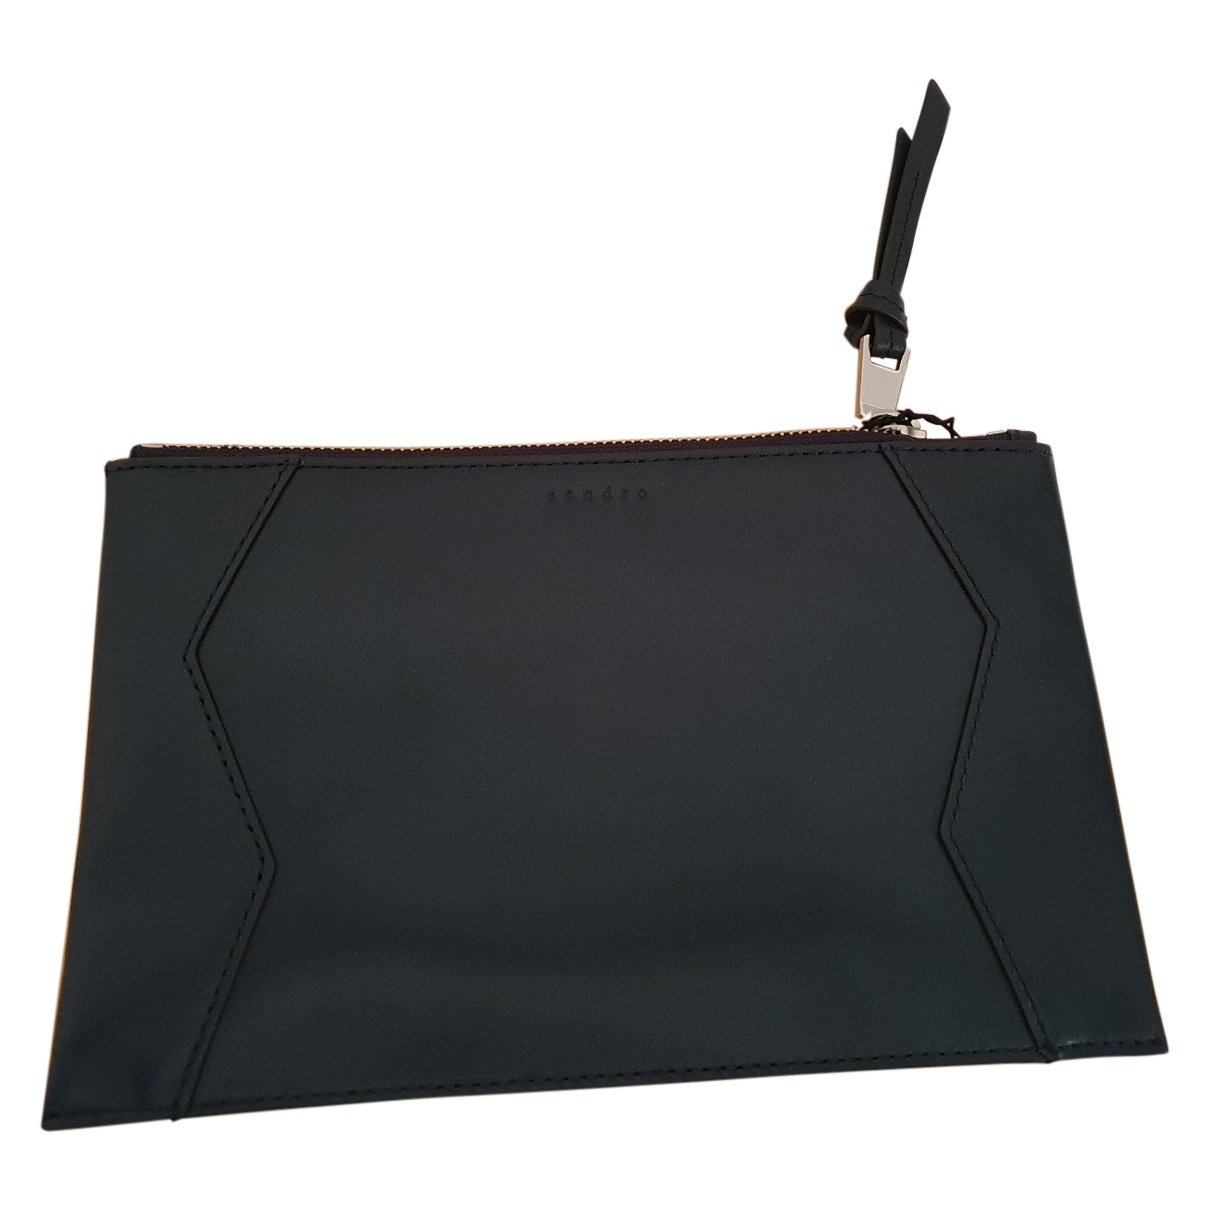 Sandro \N Navy Leather Clutch bag for Women \N